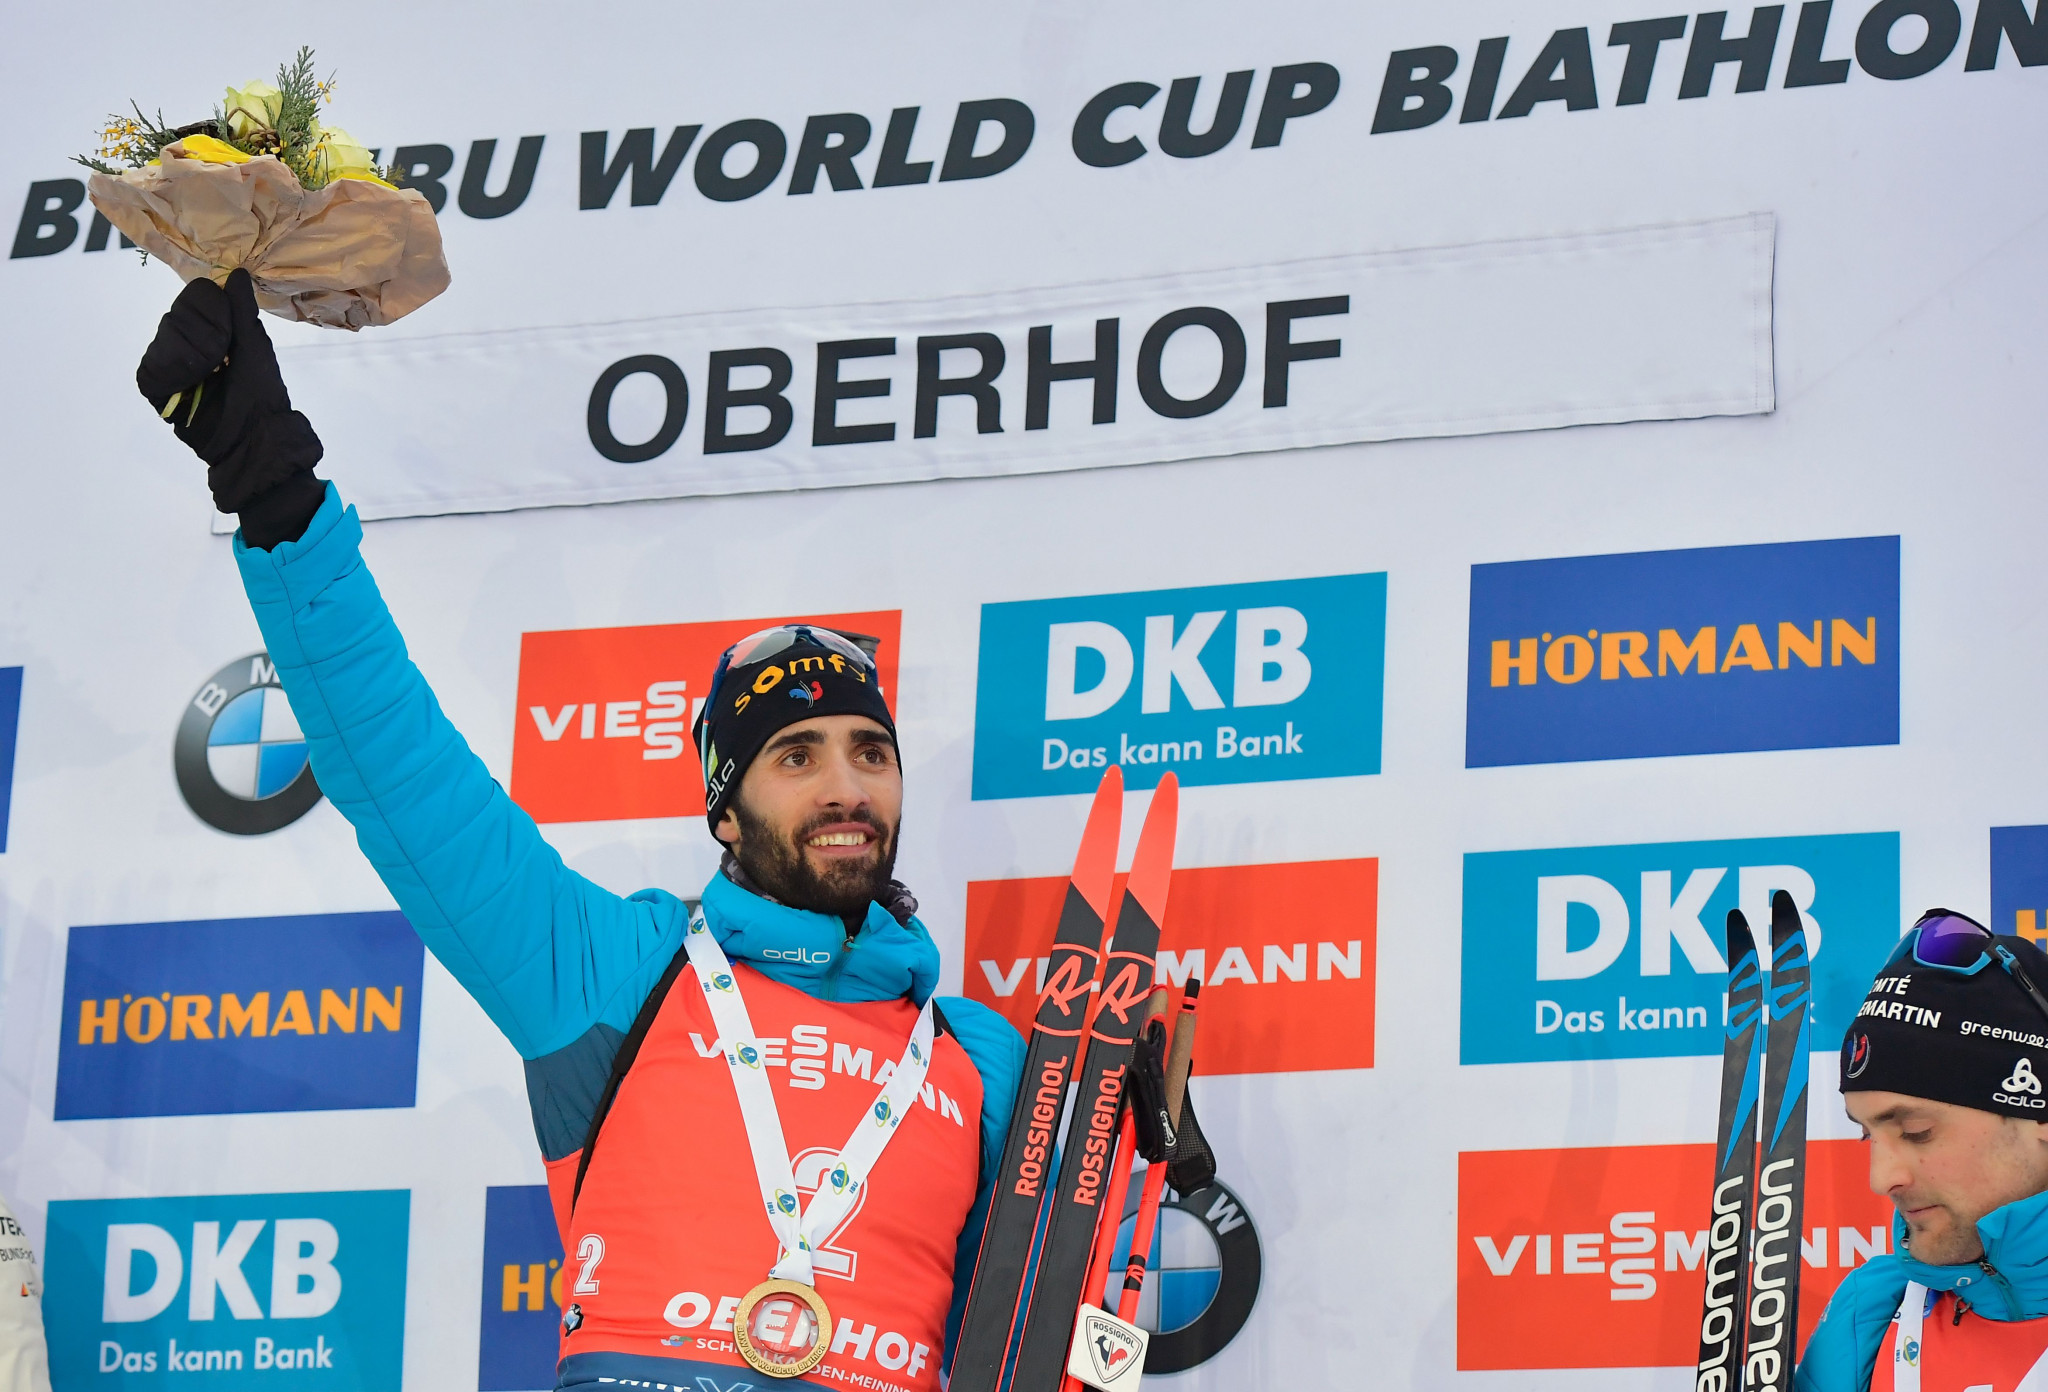 Fourcade and Mäkäräinen win concluding mass start races at IBU World Cup in Oberhof